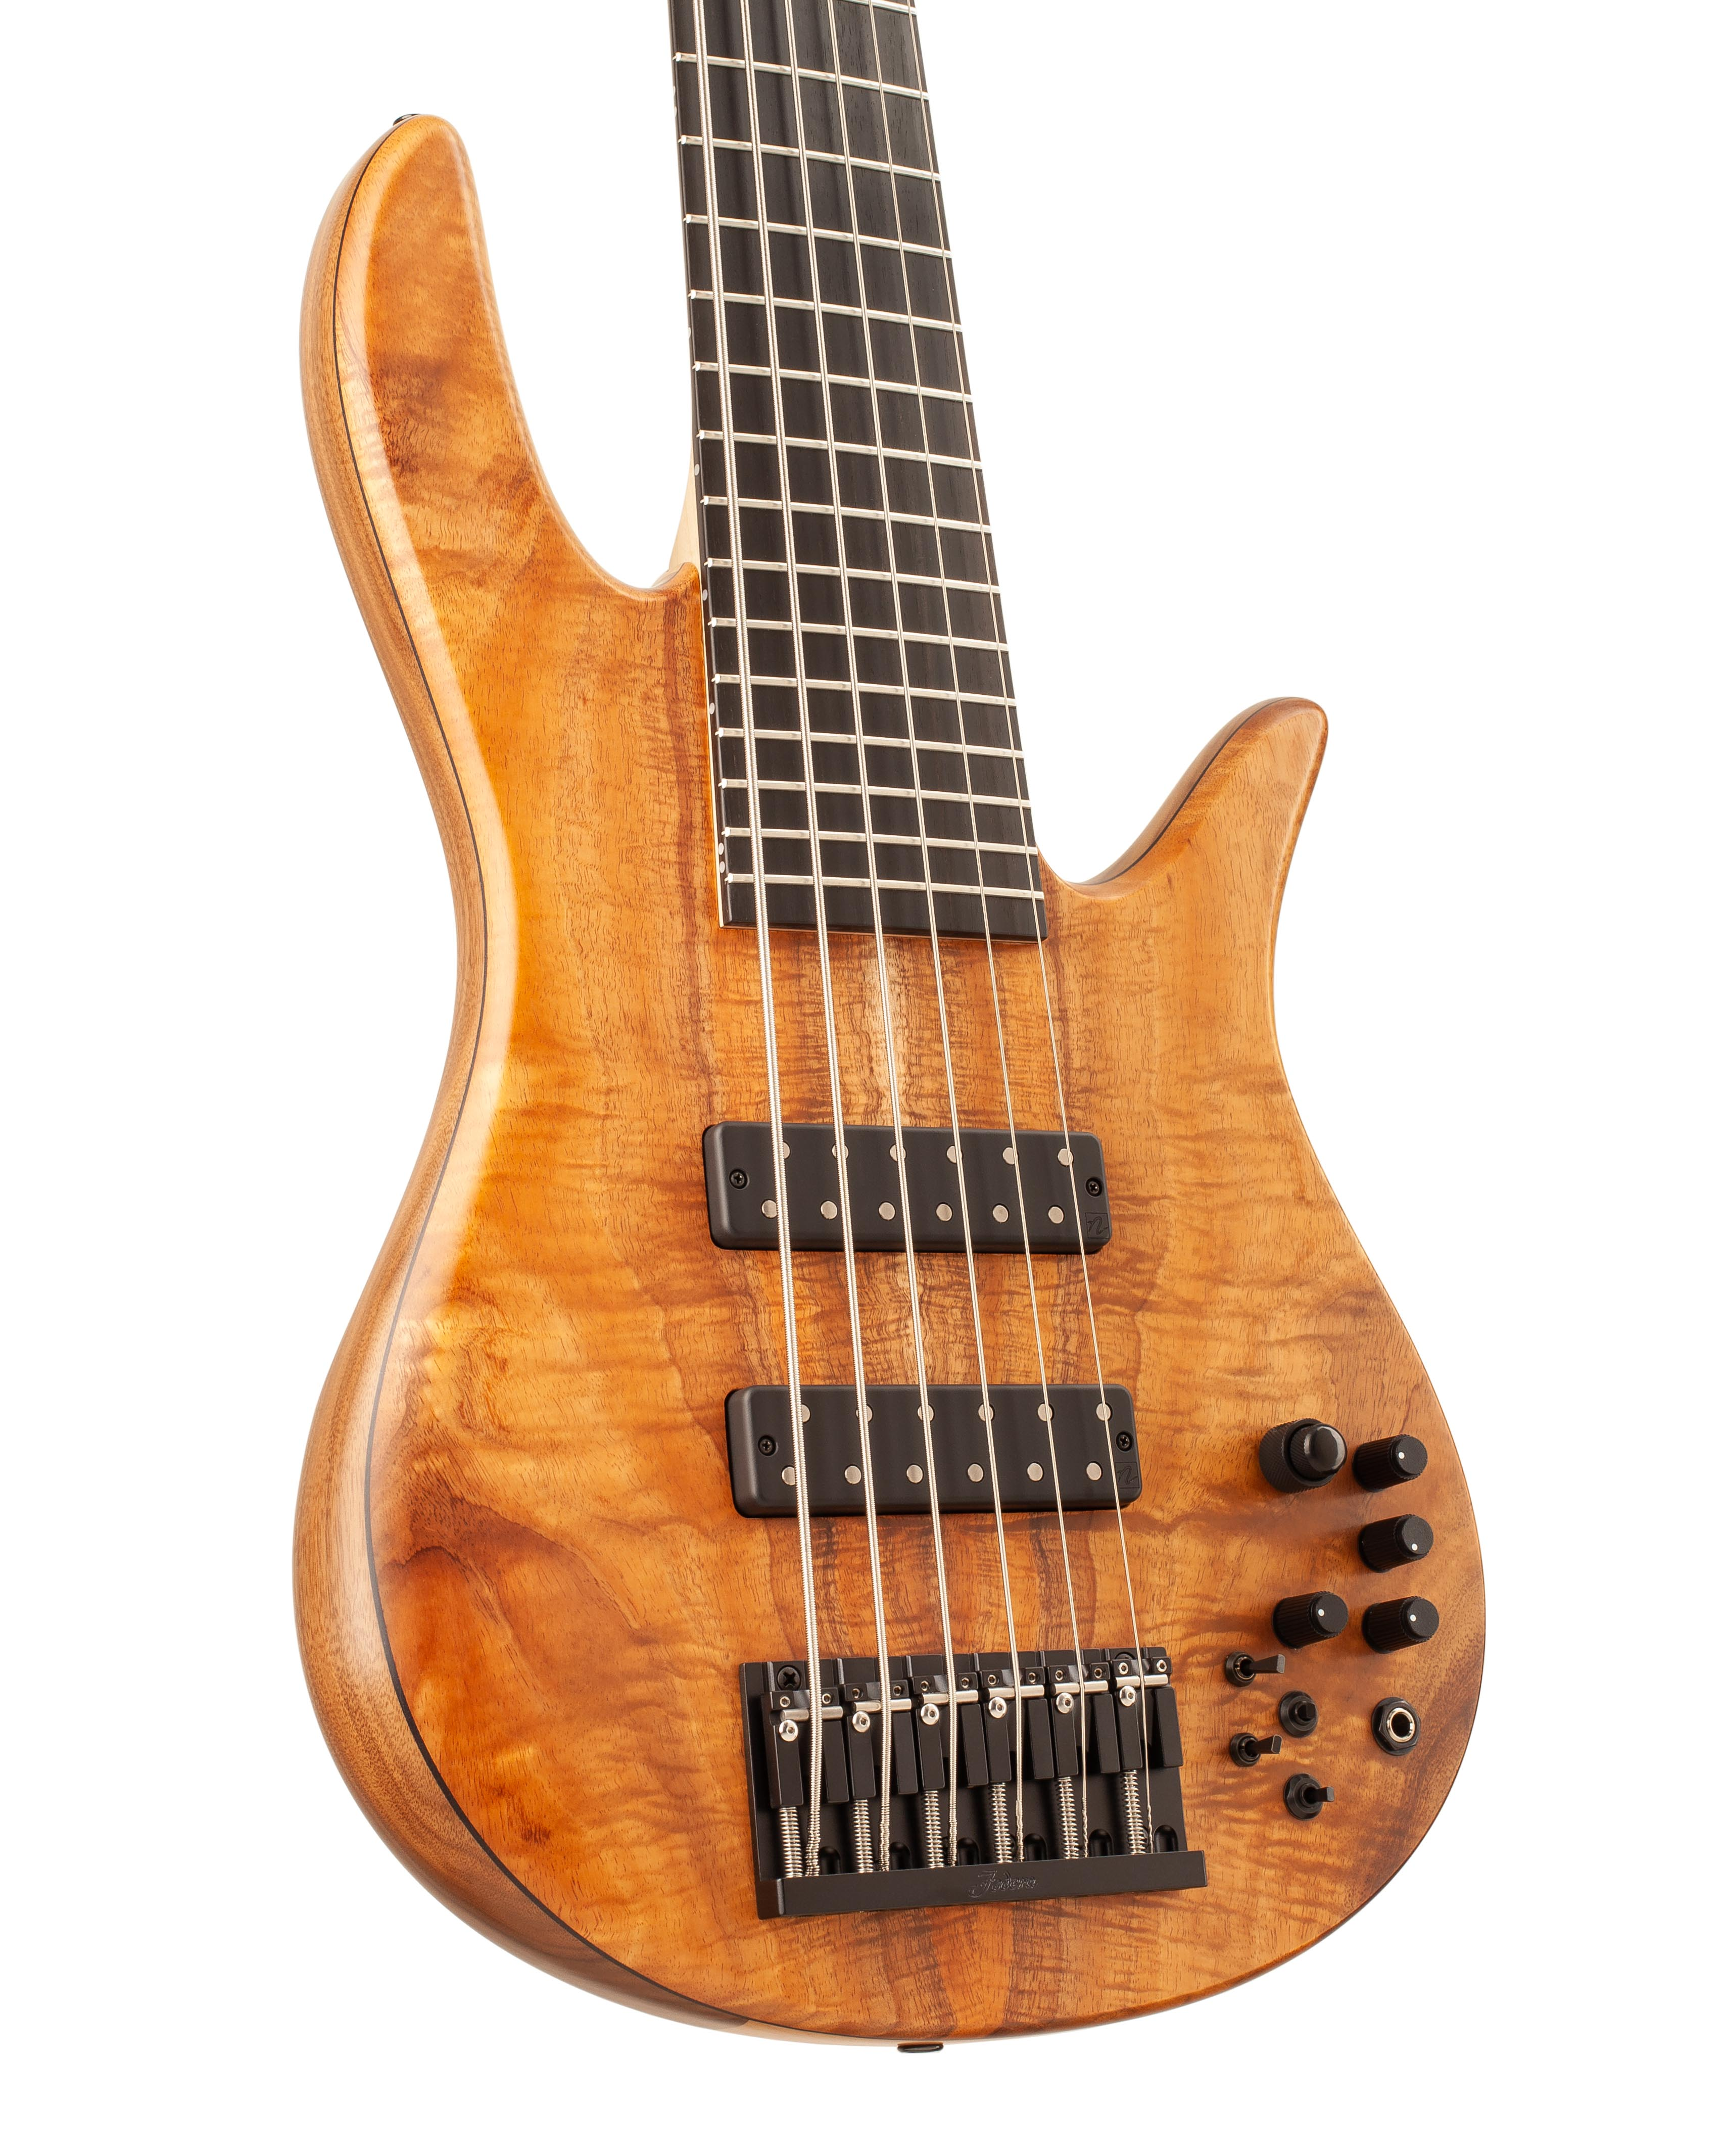 Six-String Bass With Warm Colored Topwood Front Body